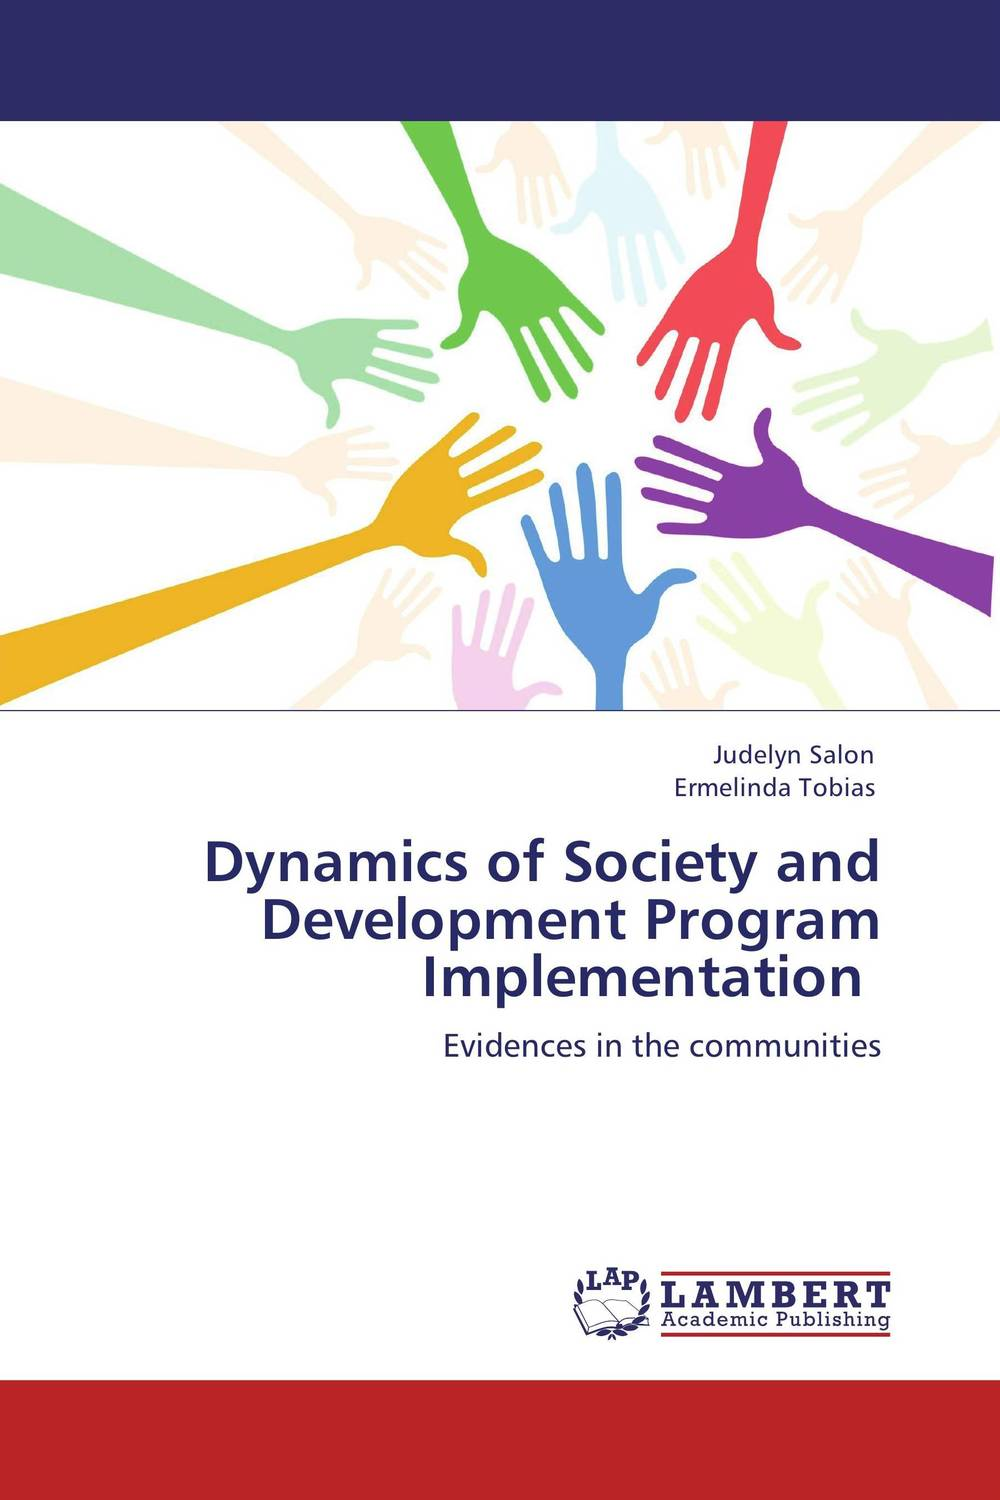 Dynamics of Society and Development Program Implementation